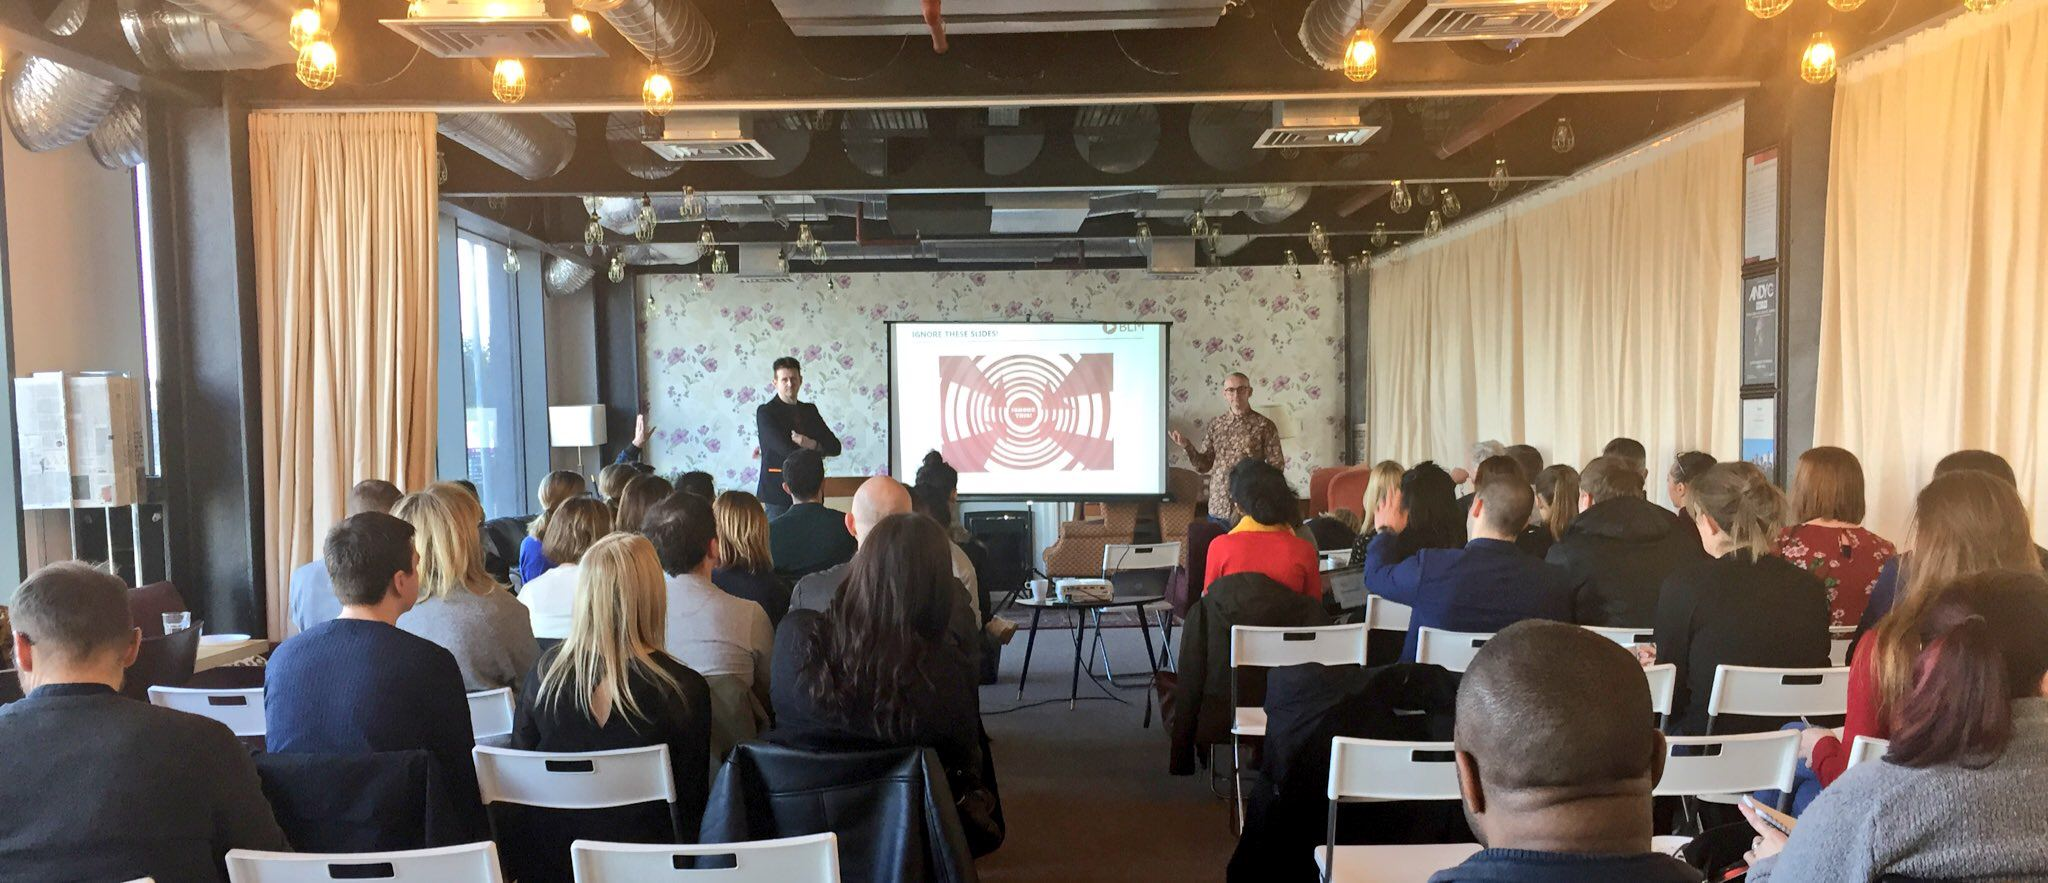 GDPR for PR and marketing - how to prepare - Unhooked Communications, Public Relations in Manchester